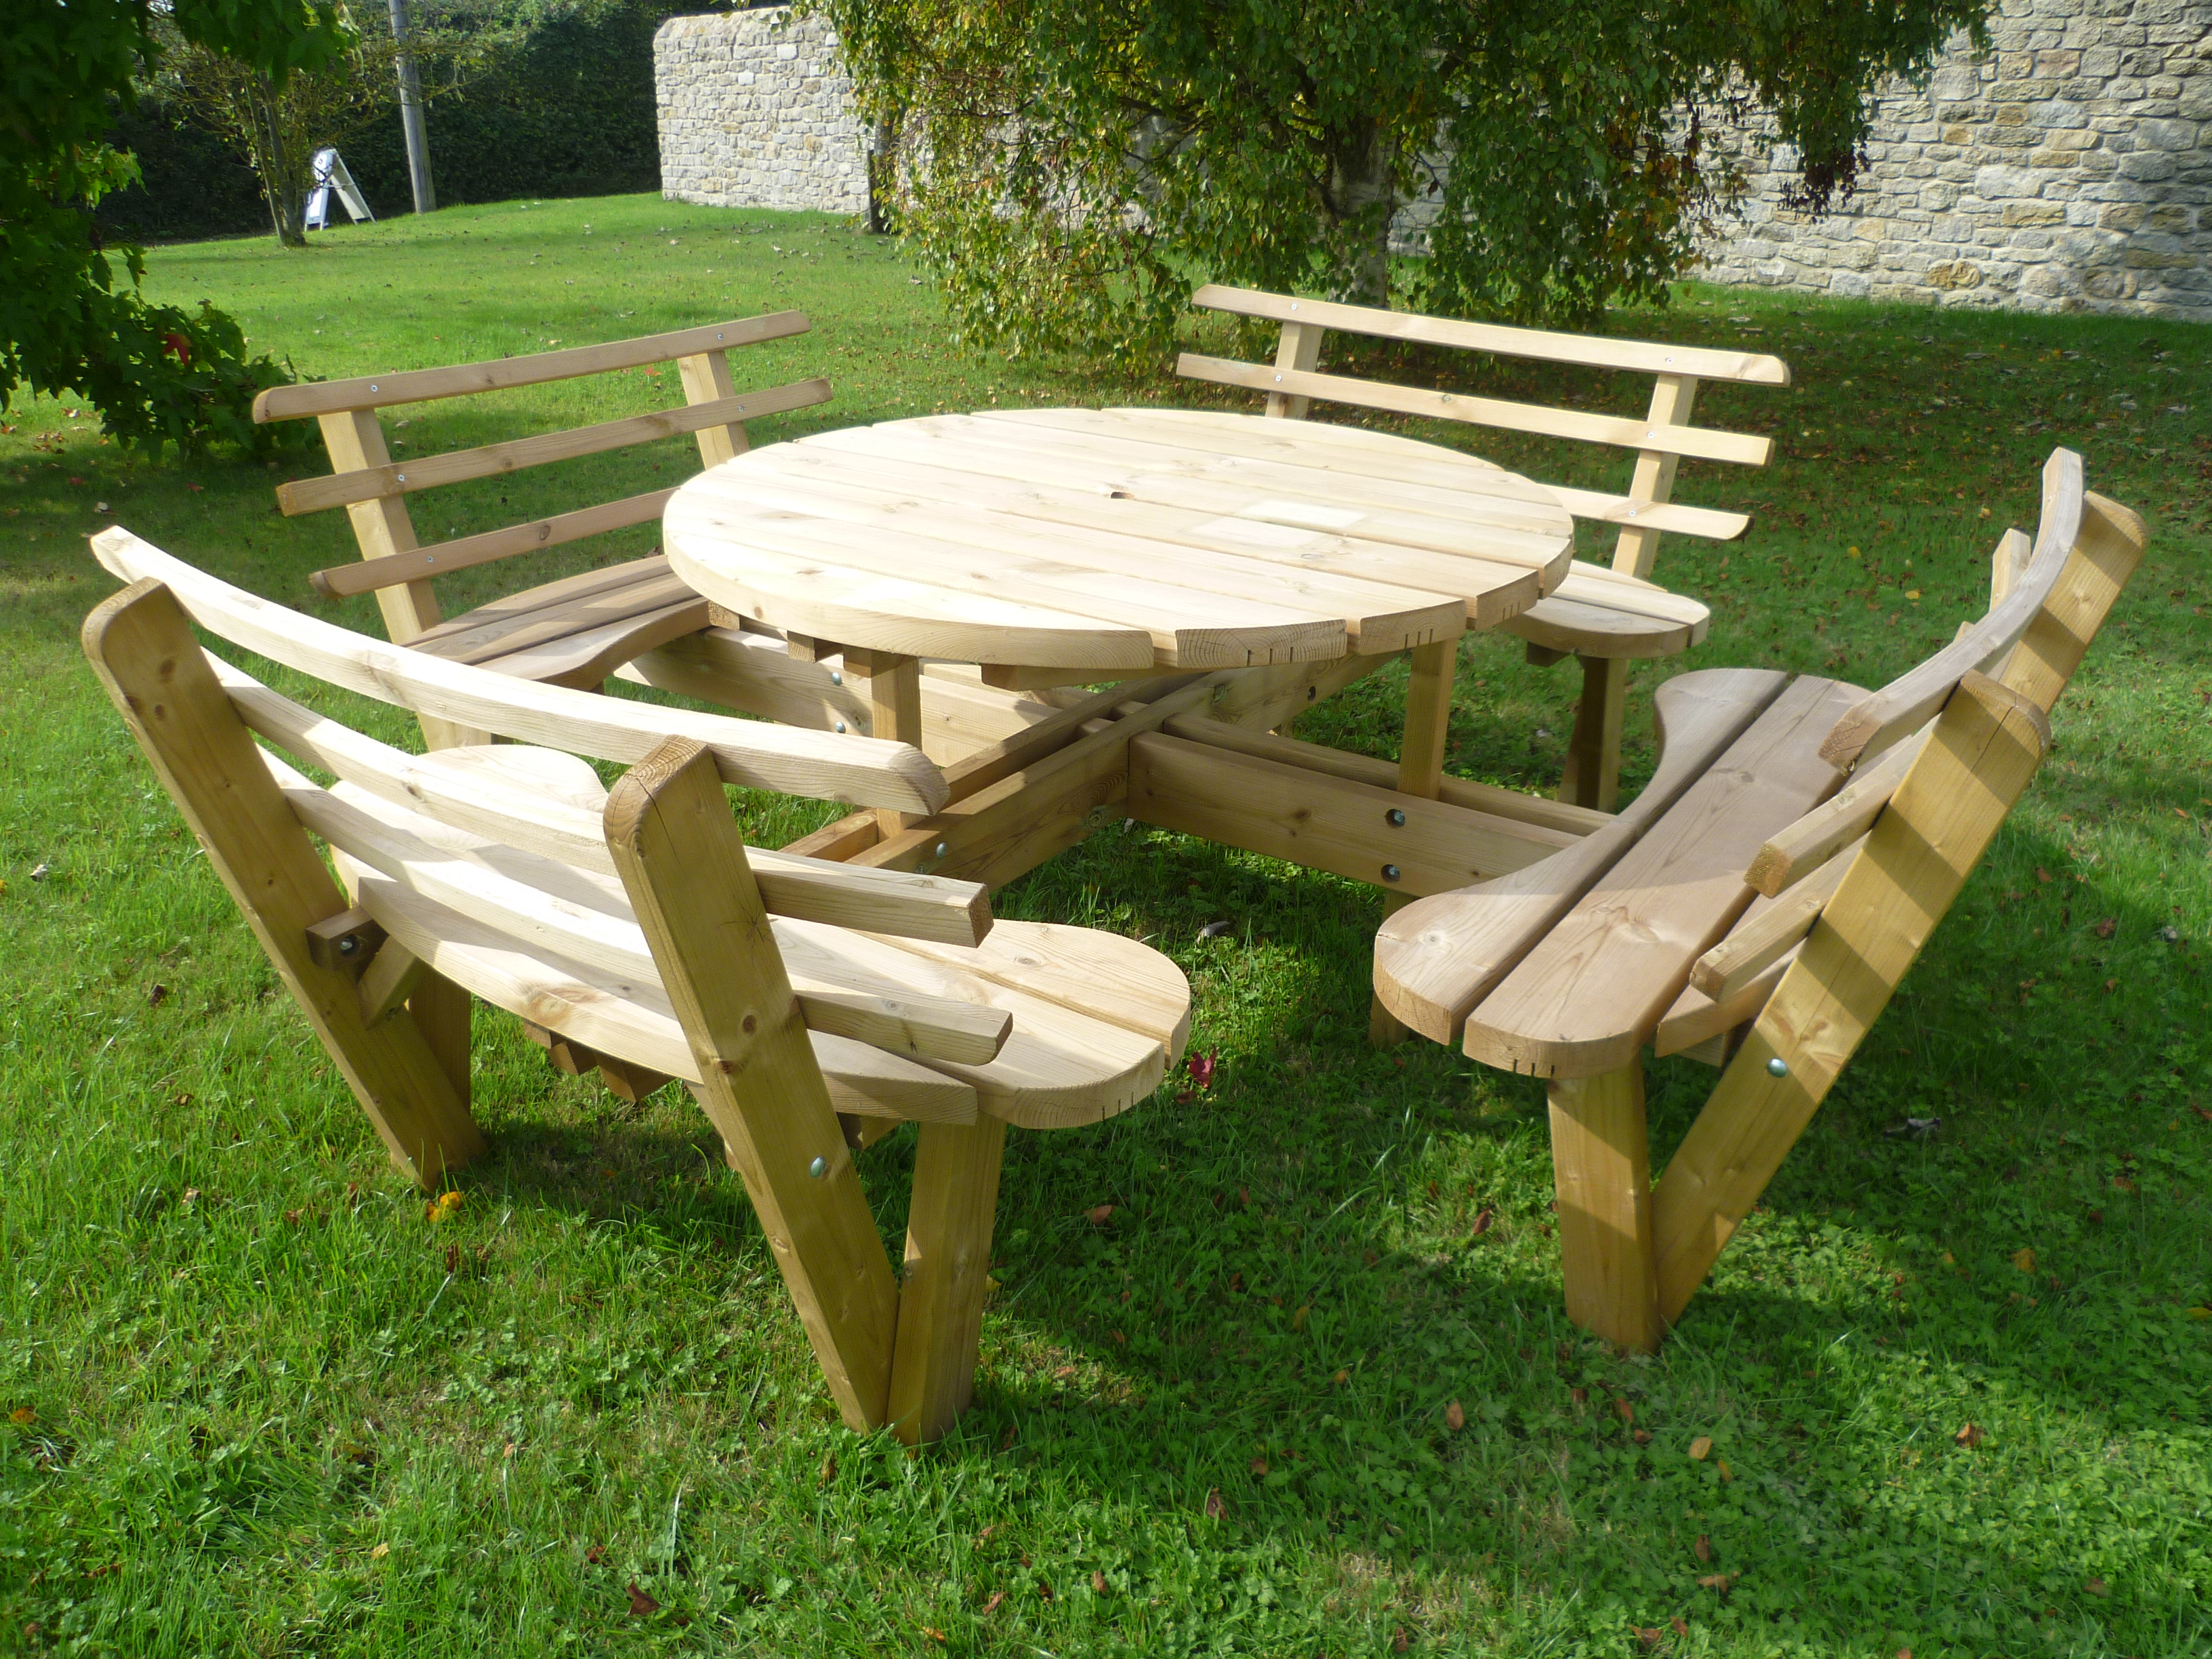 Picnic Table Circular - John Bright Fencing